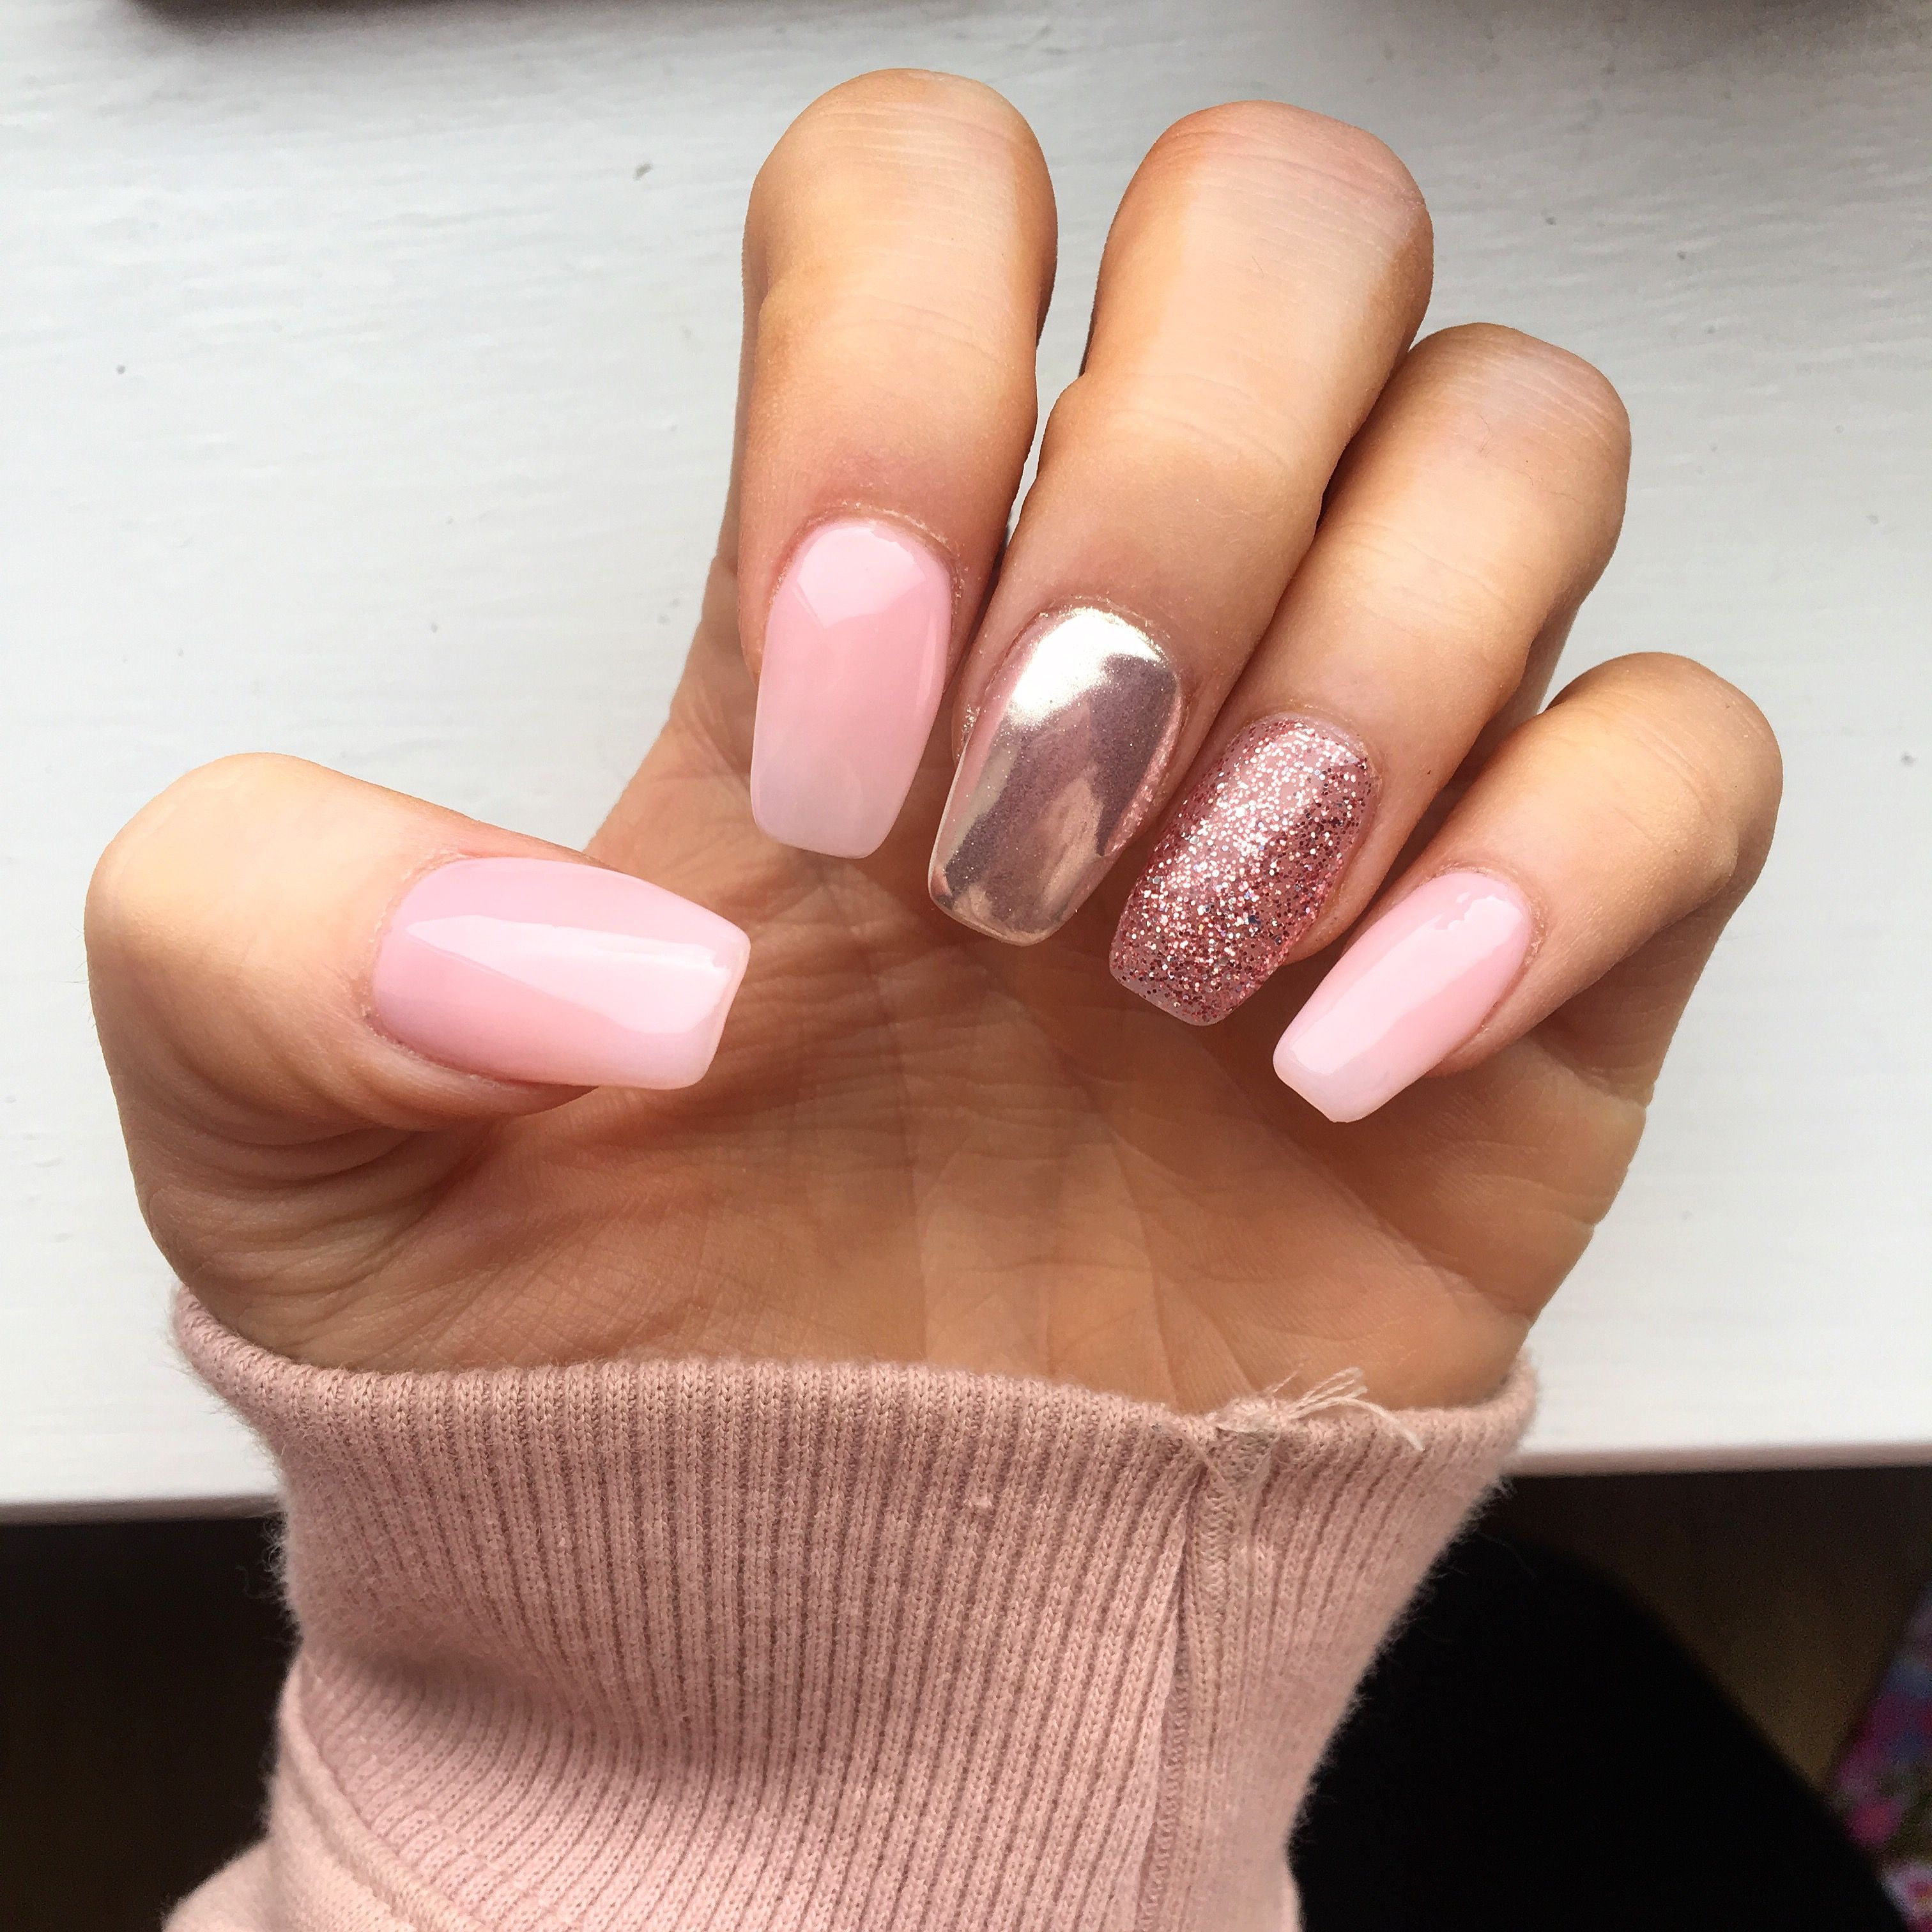 Pink, glitter and chrome nails | nails | Pinterest | Nageldesign ...